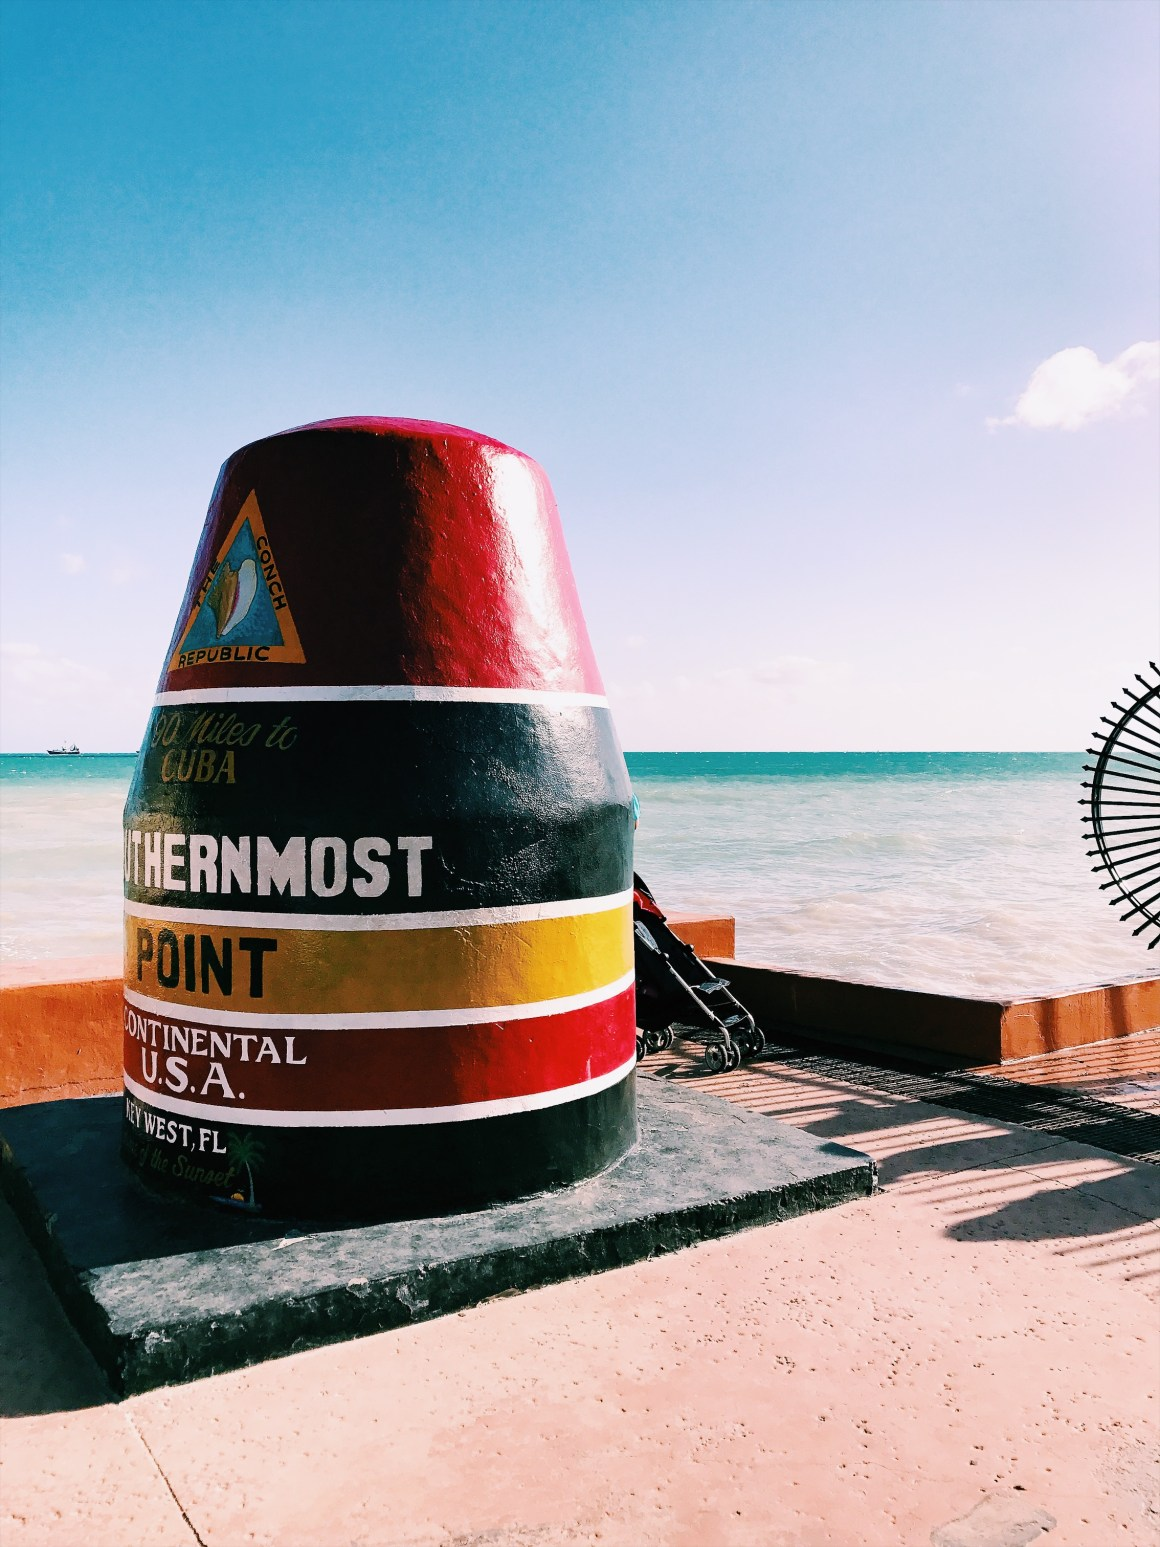 Southern most point in Key West - The Vagabond Wayfarer